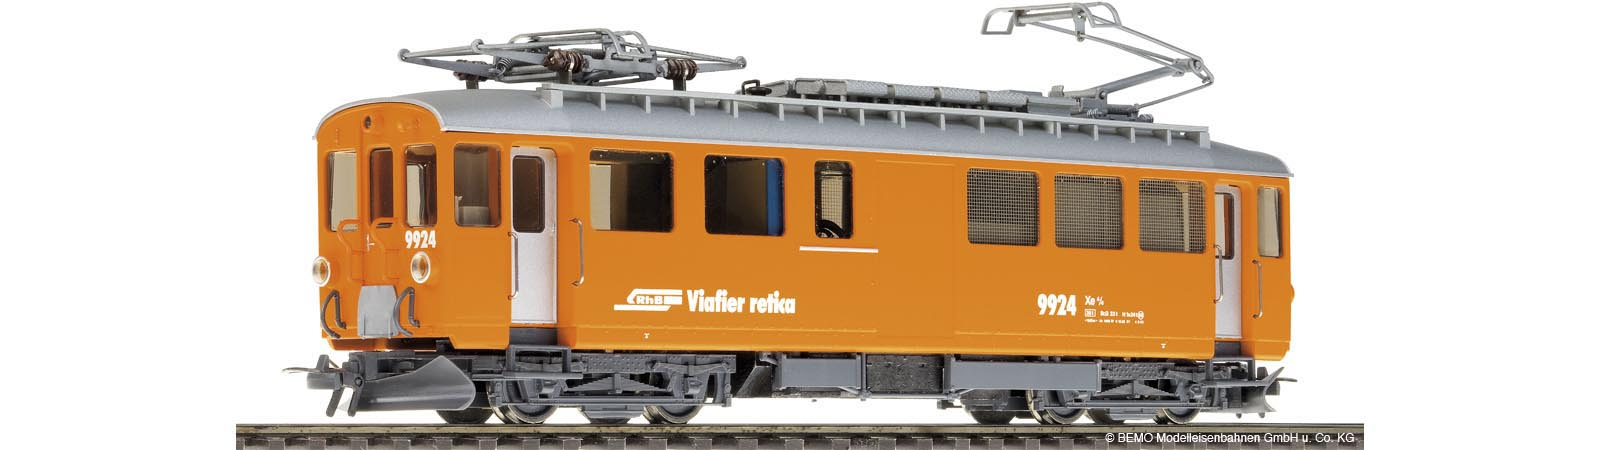 Bahndiensttreibwagen orange